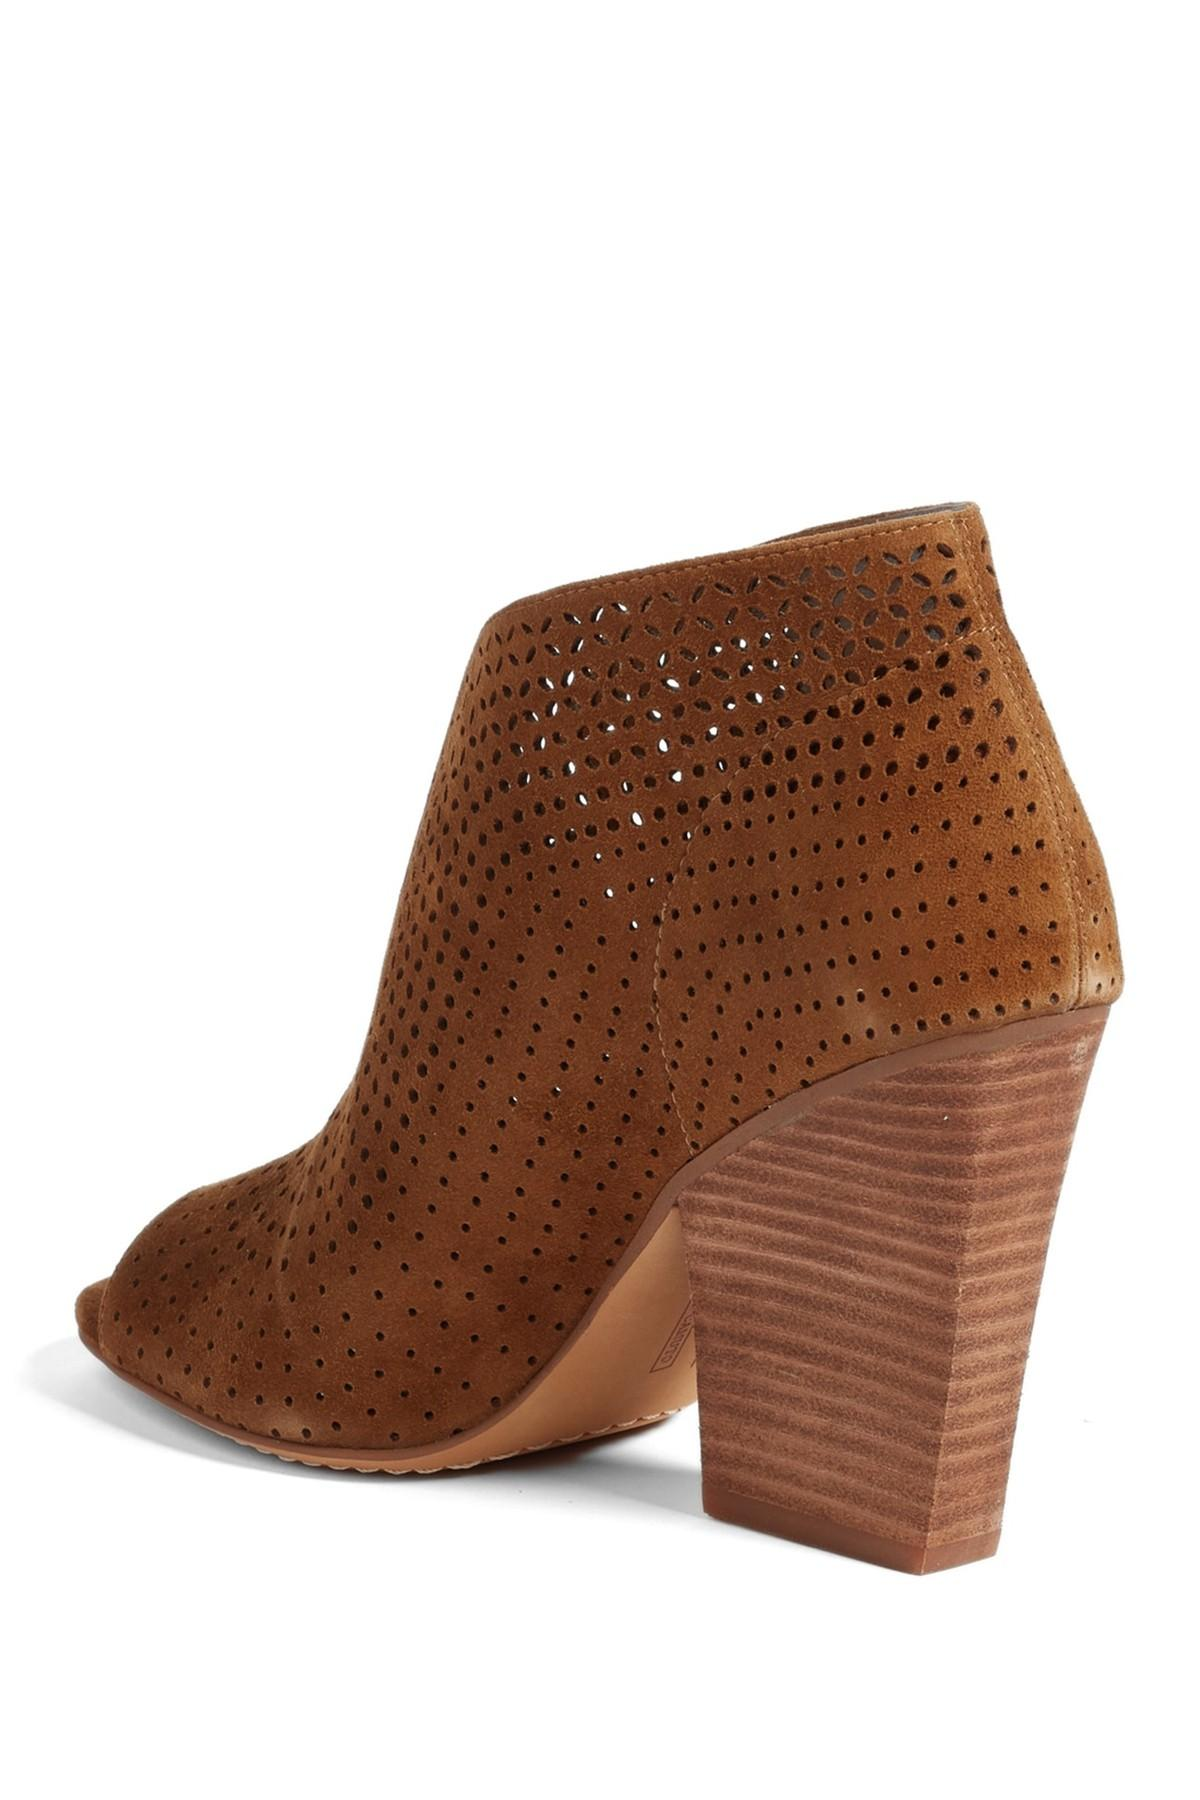 Vince Camuto Leather Kainan Open Toe